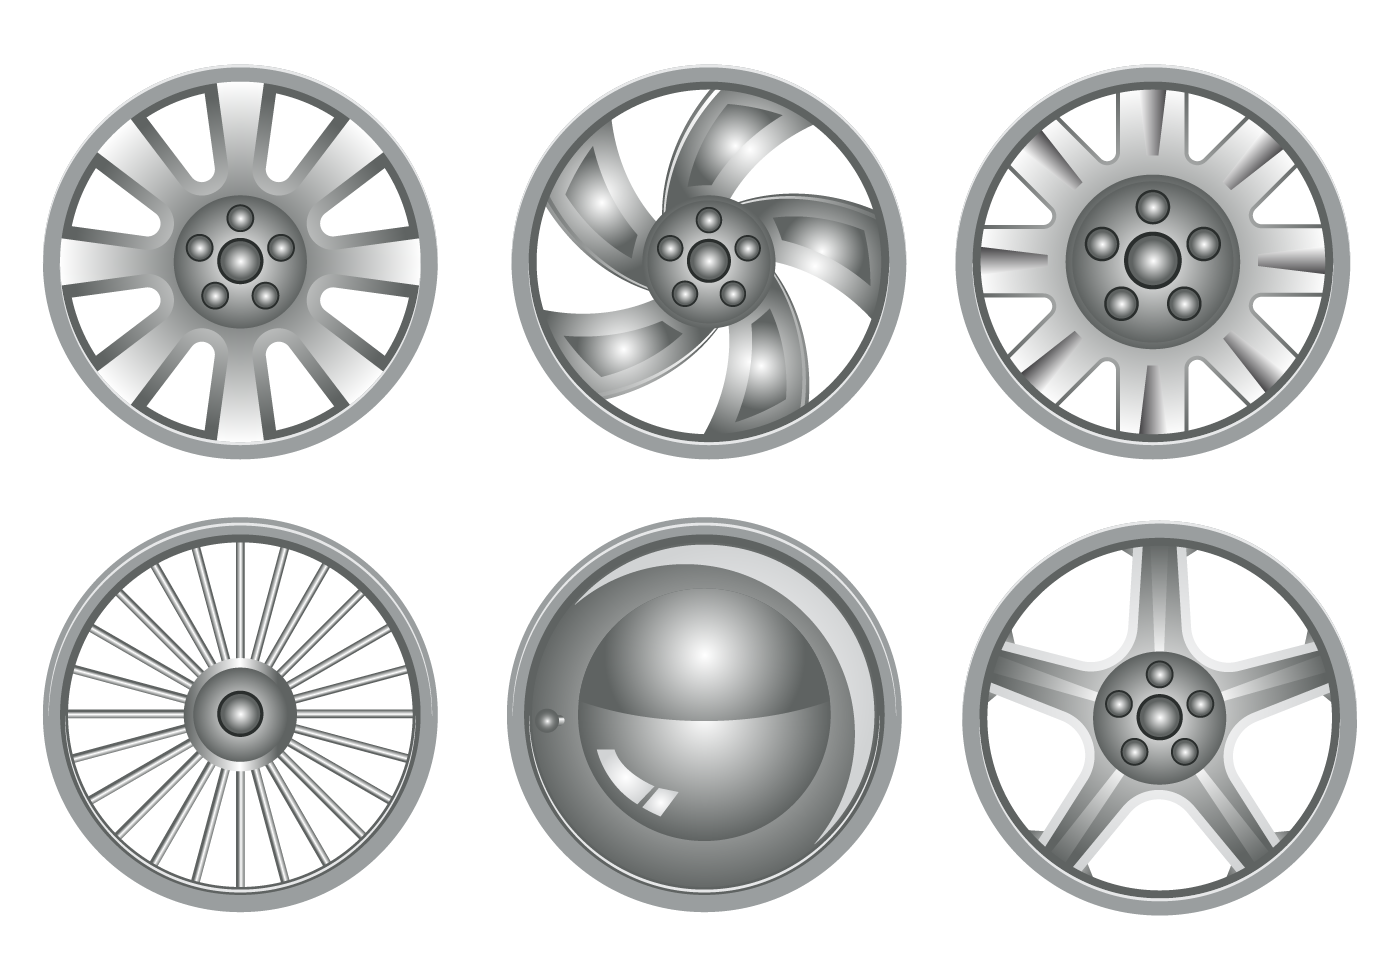 Free Shipping for Chrome Hubcaps, Wheel Covers, Truck/RV Dual Wheel Hubcaps, Chrome Trim and Grill Inserts, Secure Ordering The AutoAmenity business is Closed effective June 30, We want to thank our loyal customers for supporting us over the last 15 years.